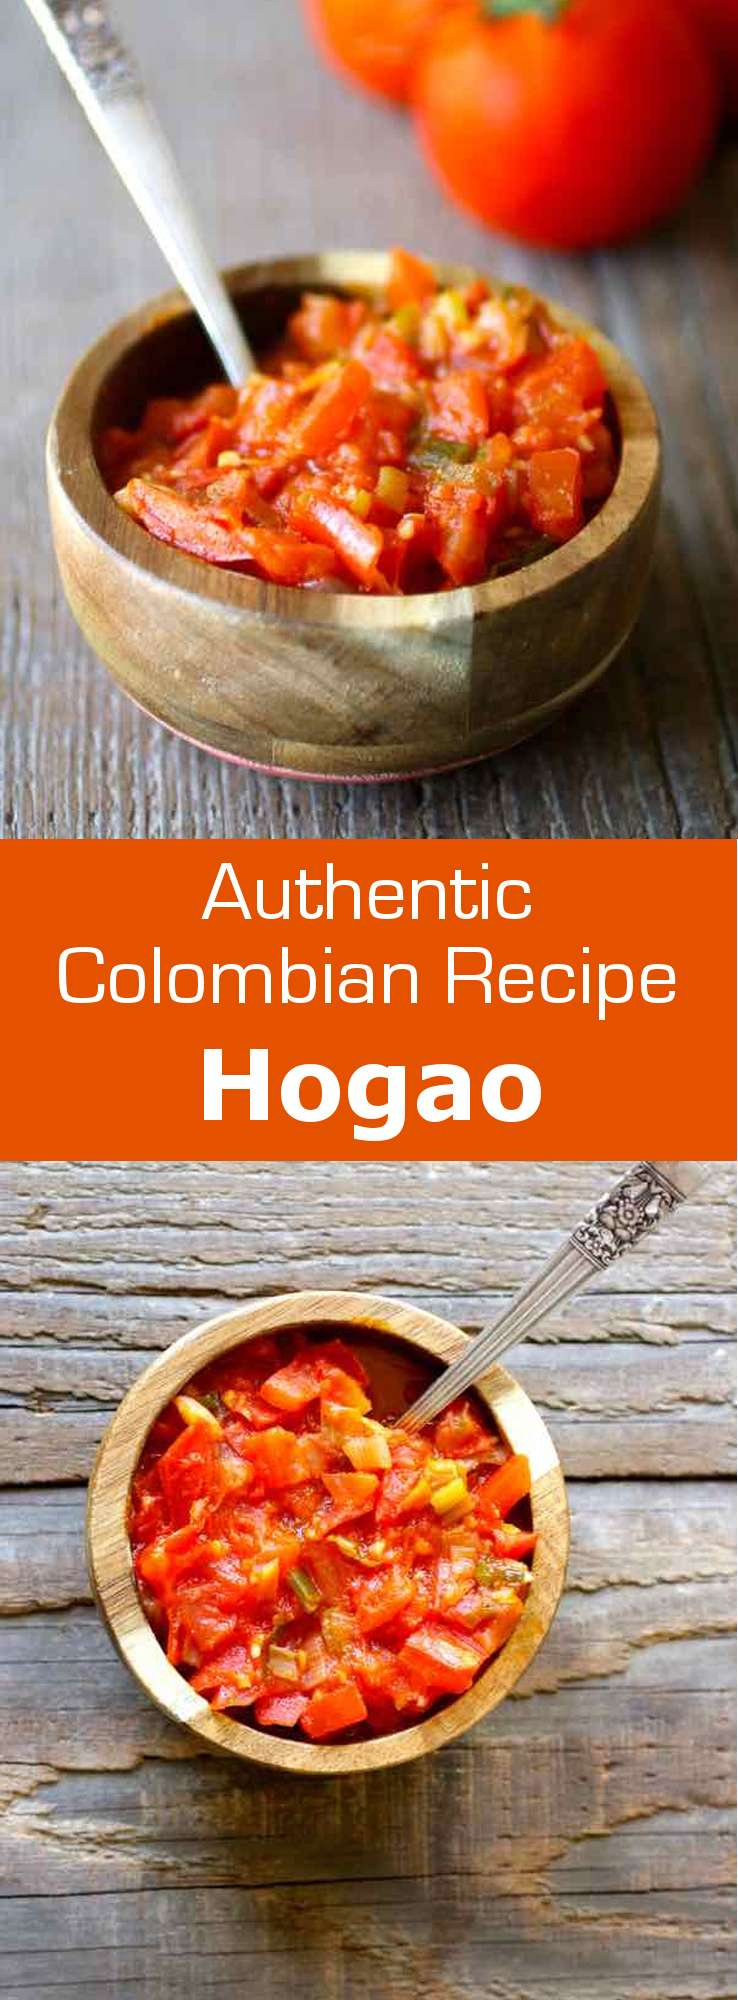 Hogao, also known as criollo sauce, is a traditional Colombian condiment, typically served with rice, meats, arepas as well as patacones #Colombia #196flavors